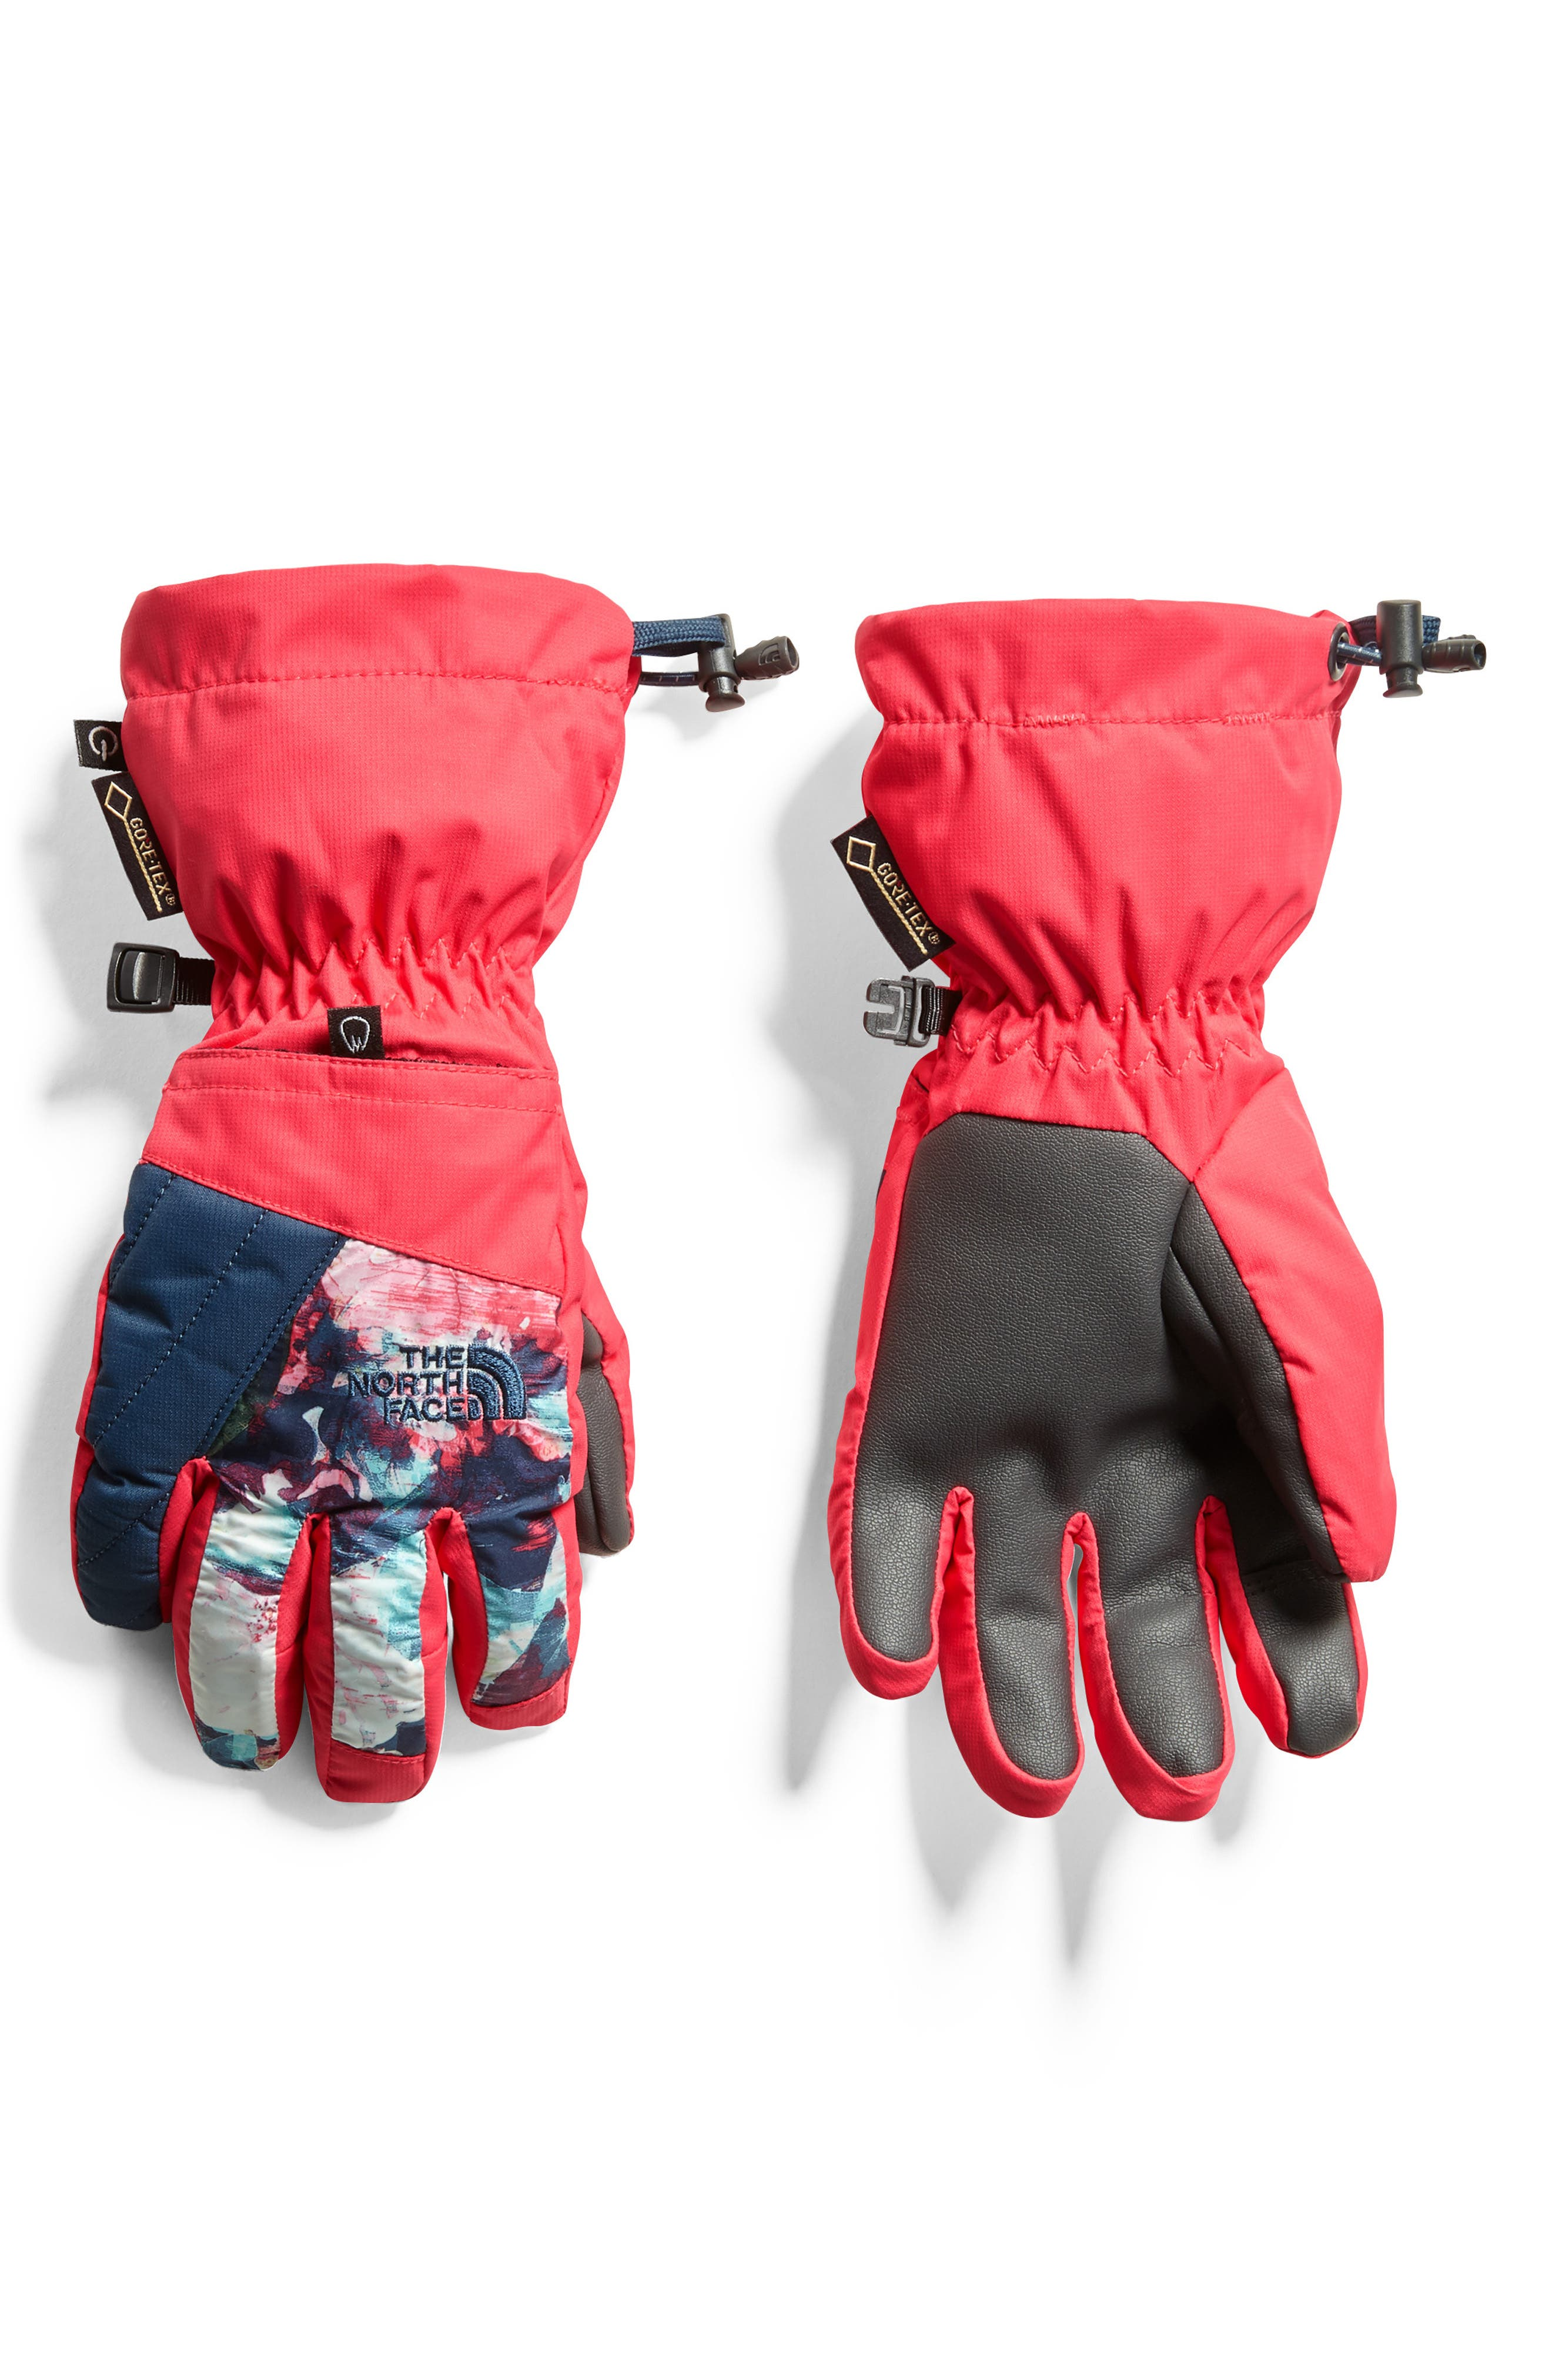 Montana Gore-Tex<sup>®</sup> Waterproof Gloves,                             Main thumbnail 1, color,                             PINK FLORAL PRINT/ BLUE TEAL